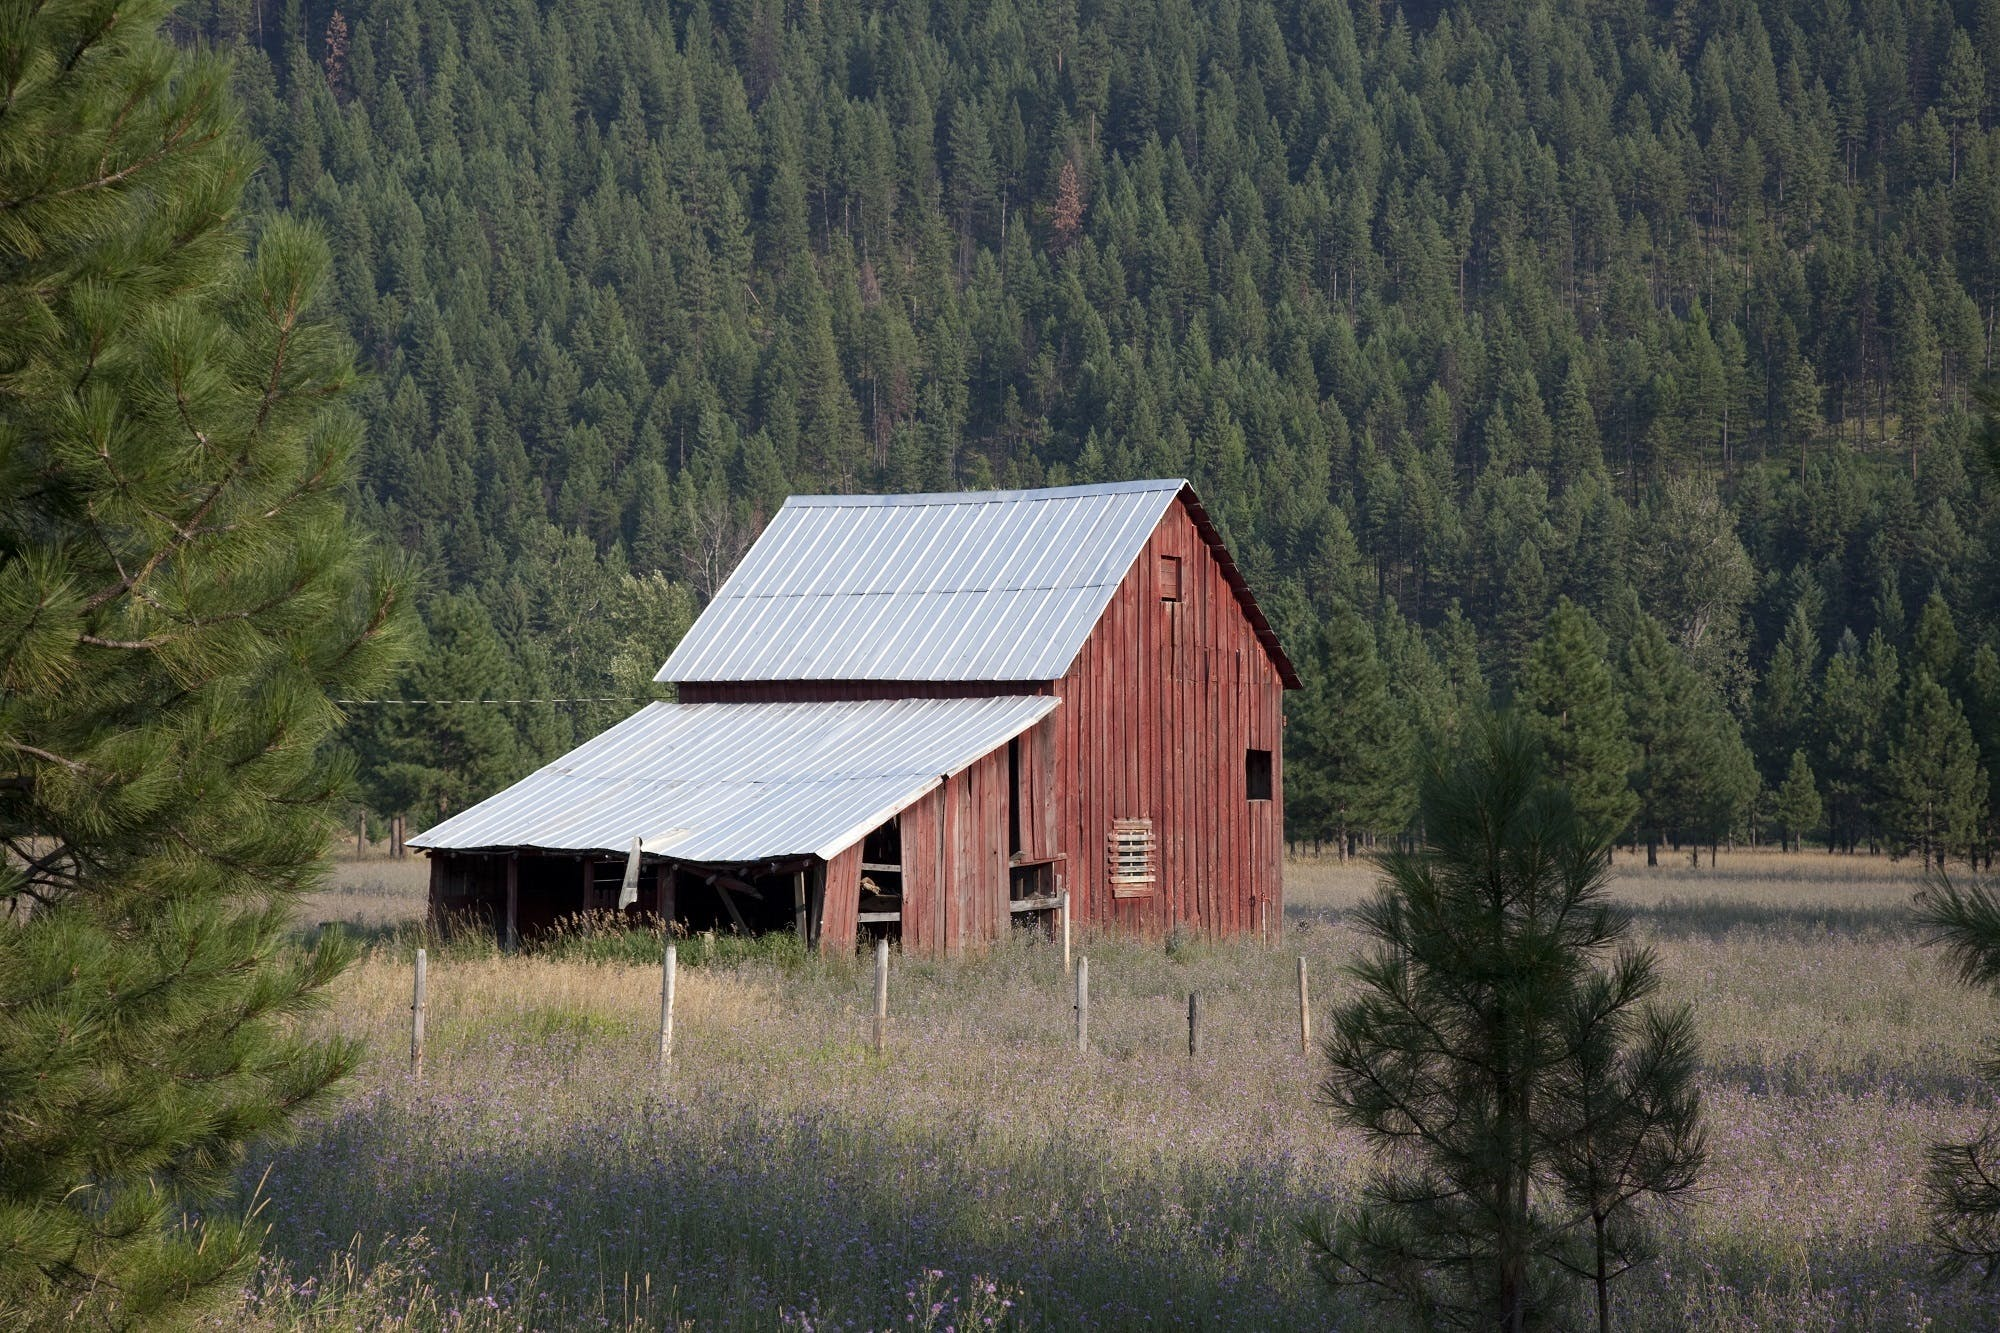 Red Wooden Barn during Daytime